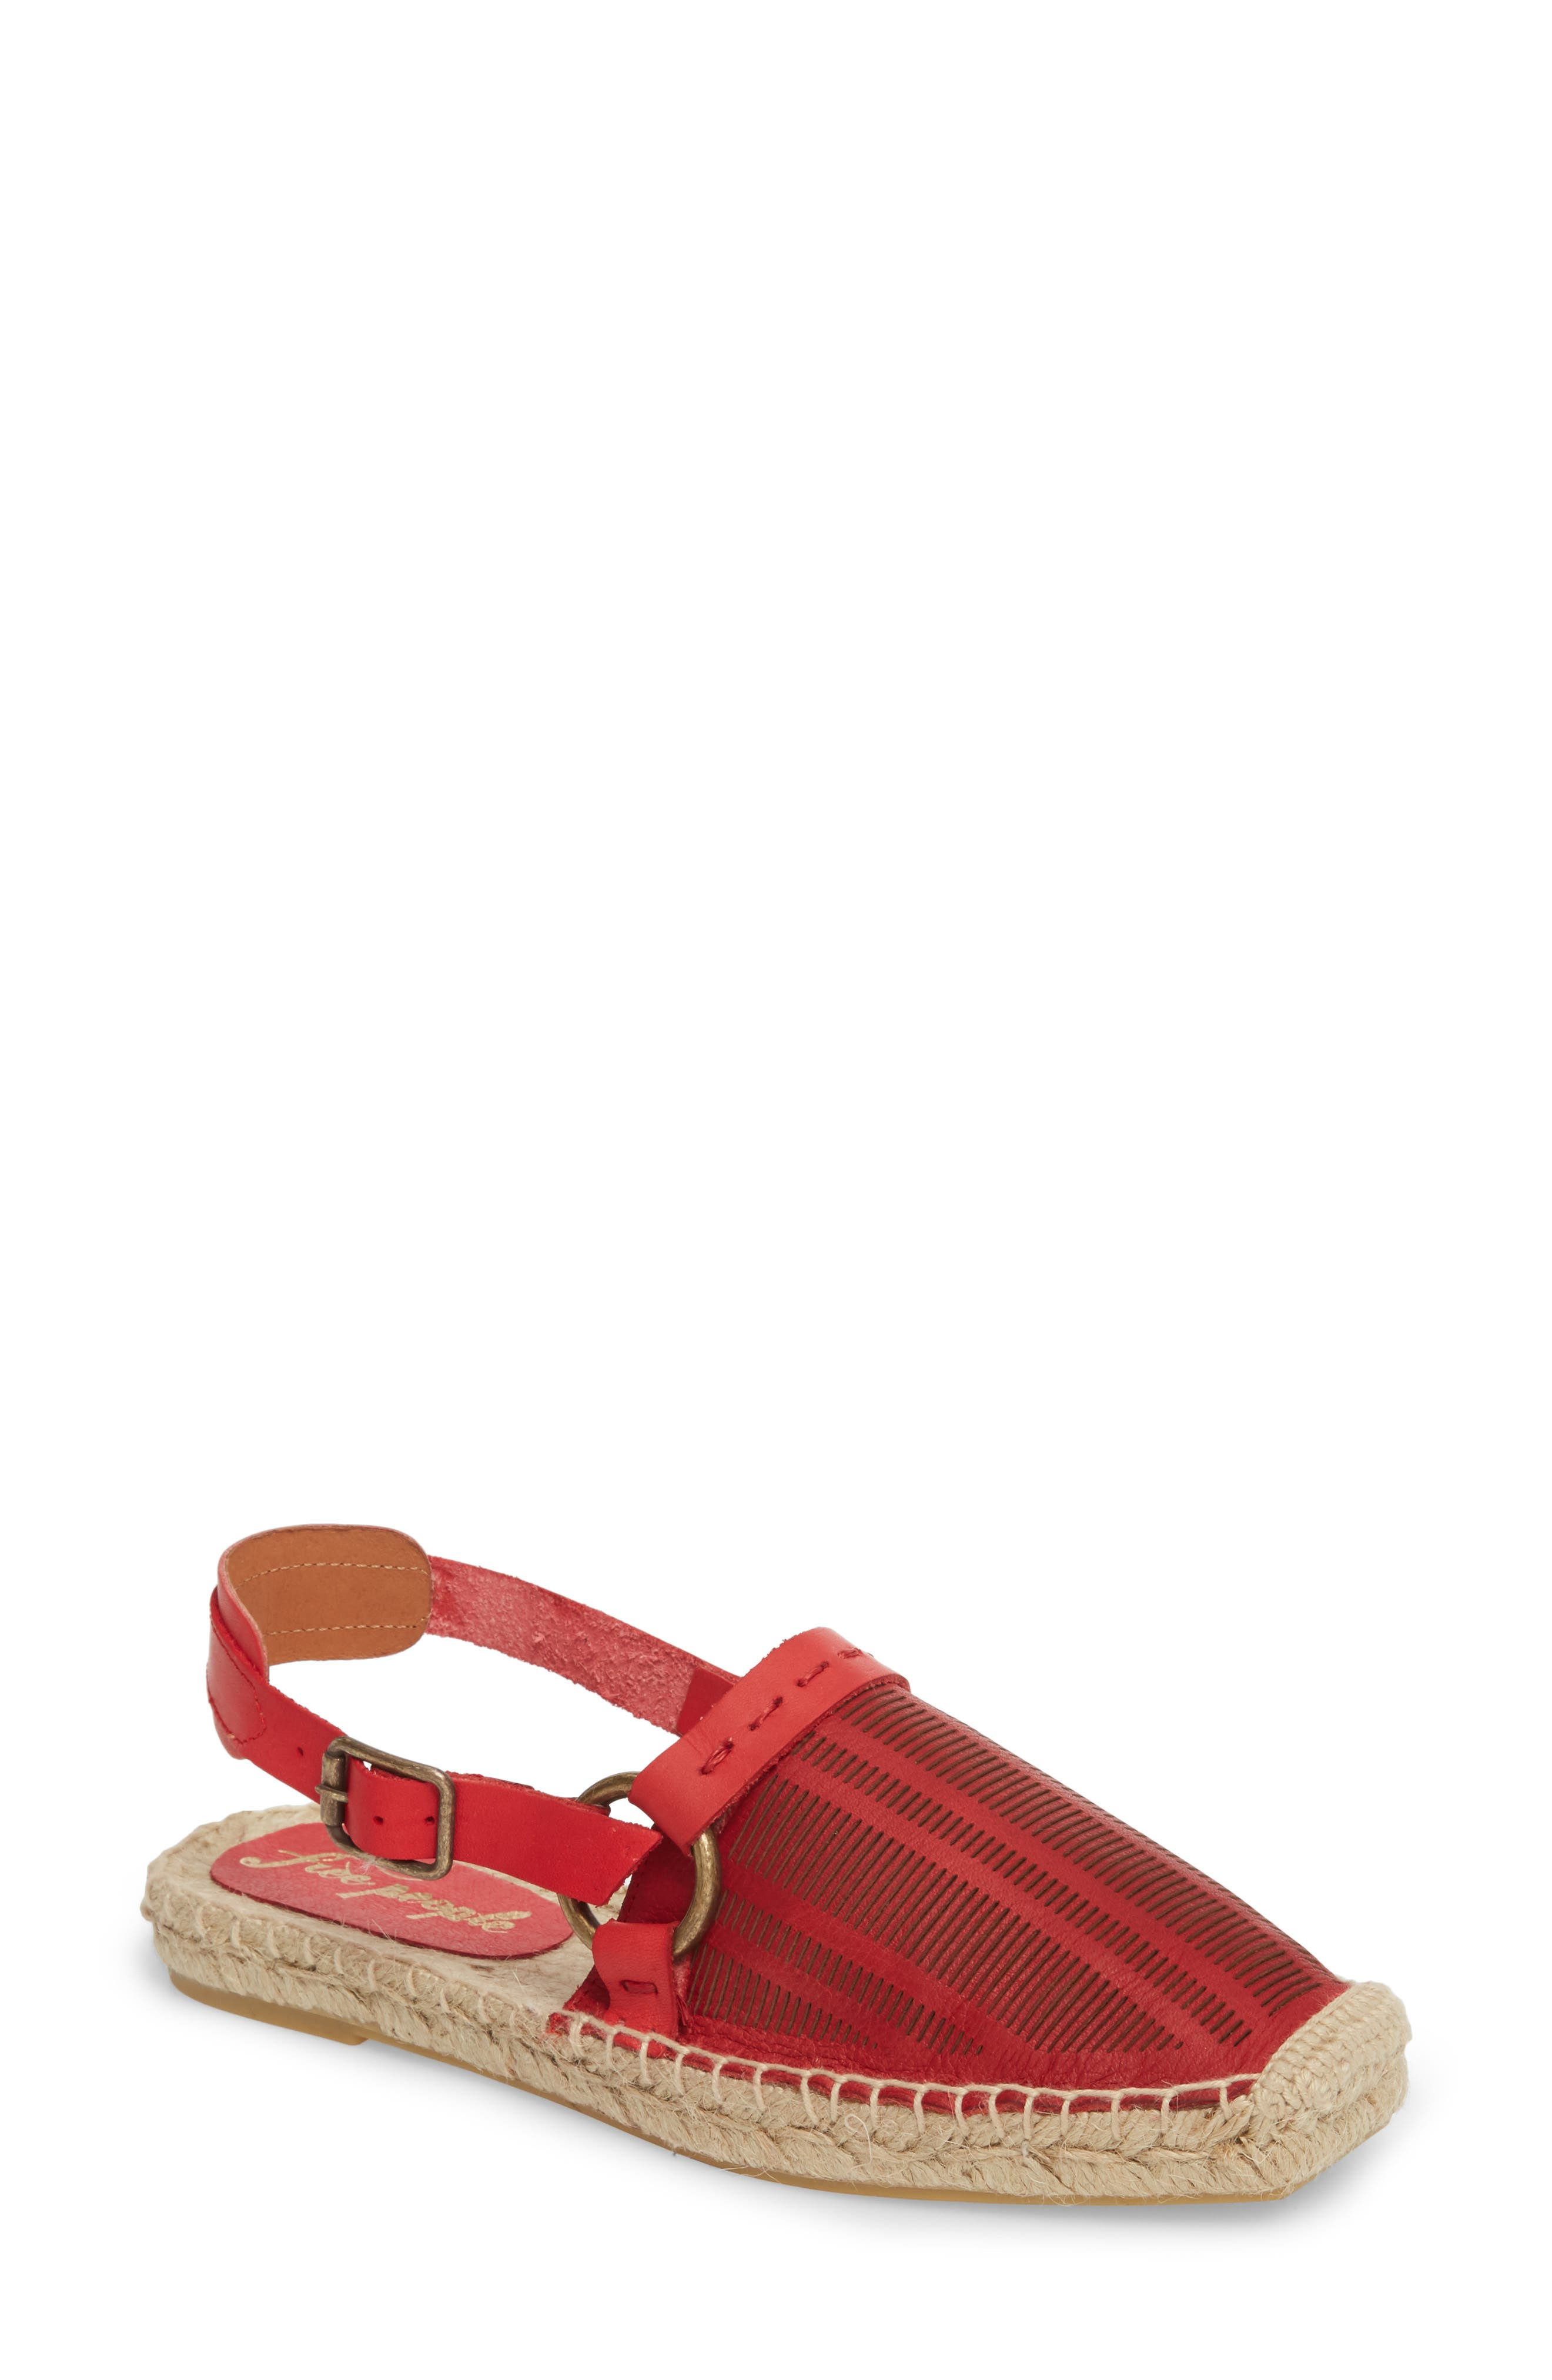 Free People Cabo Espadrille Flat (Women)